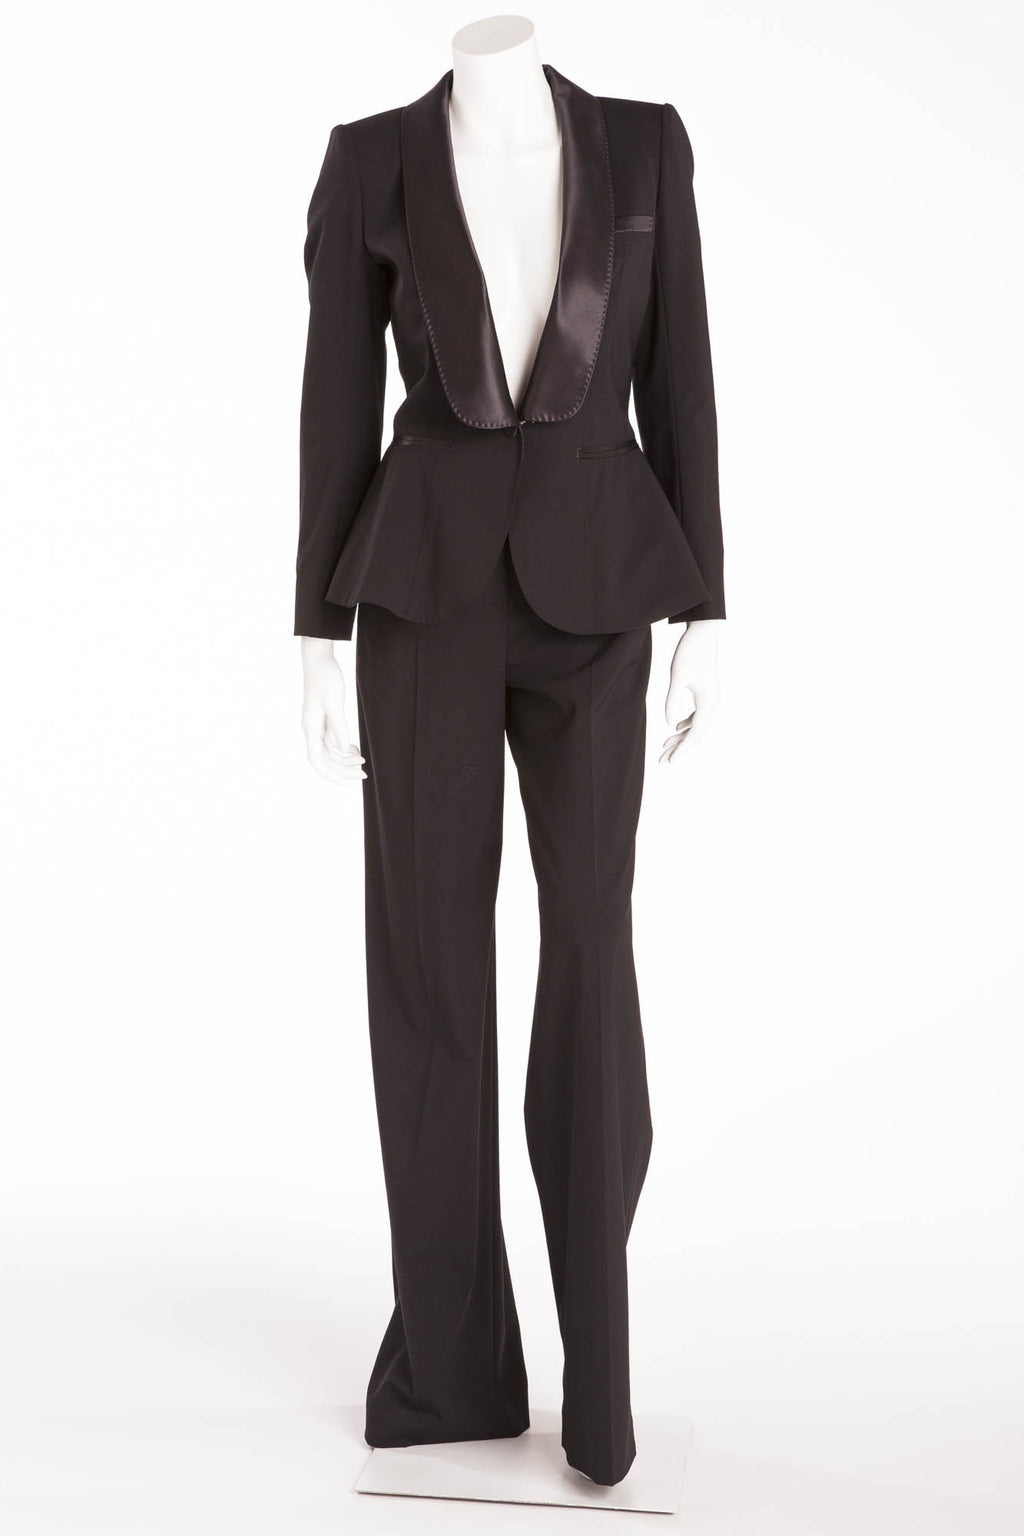 Louis Vuitton - New 2PC Black Blazer & Dress Pants with Satin Trim - FR 38